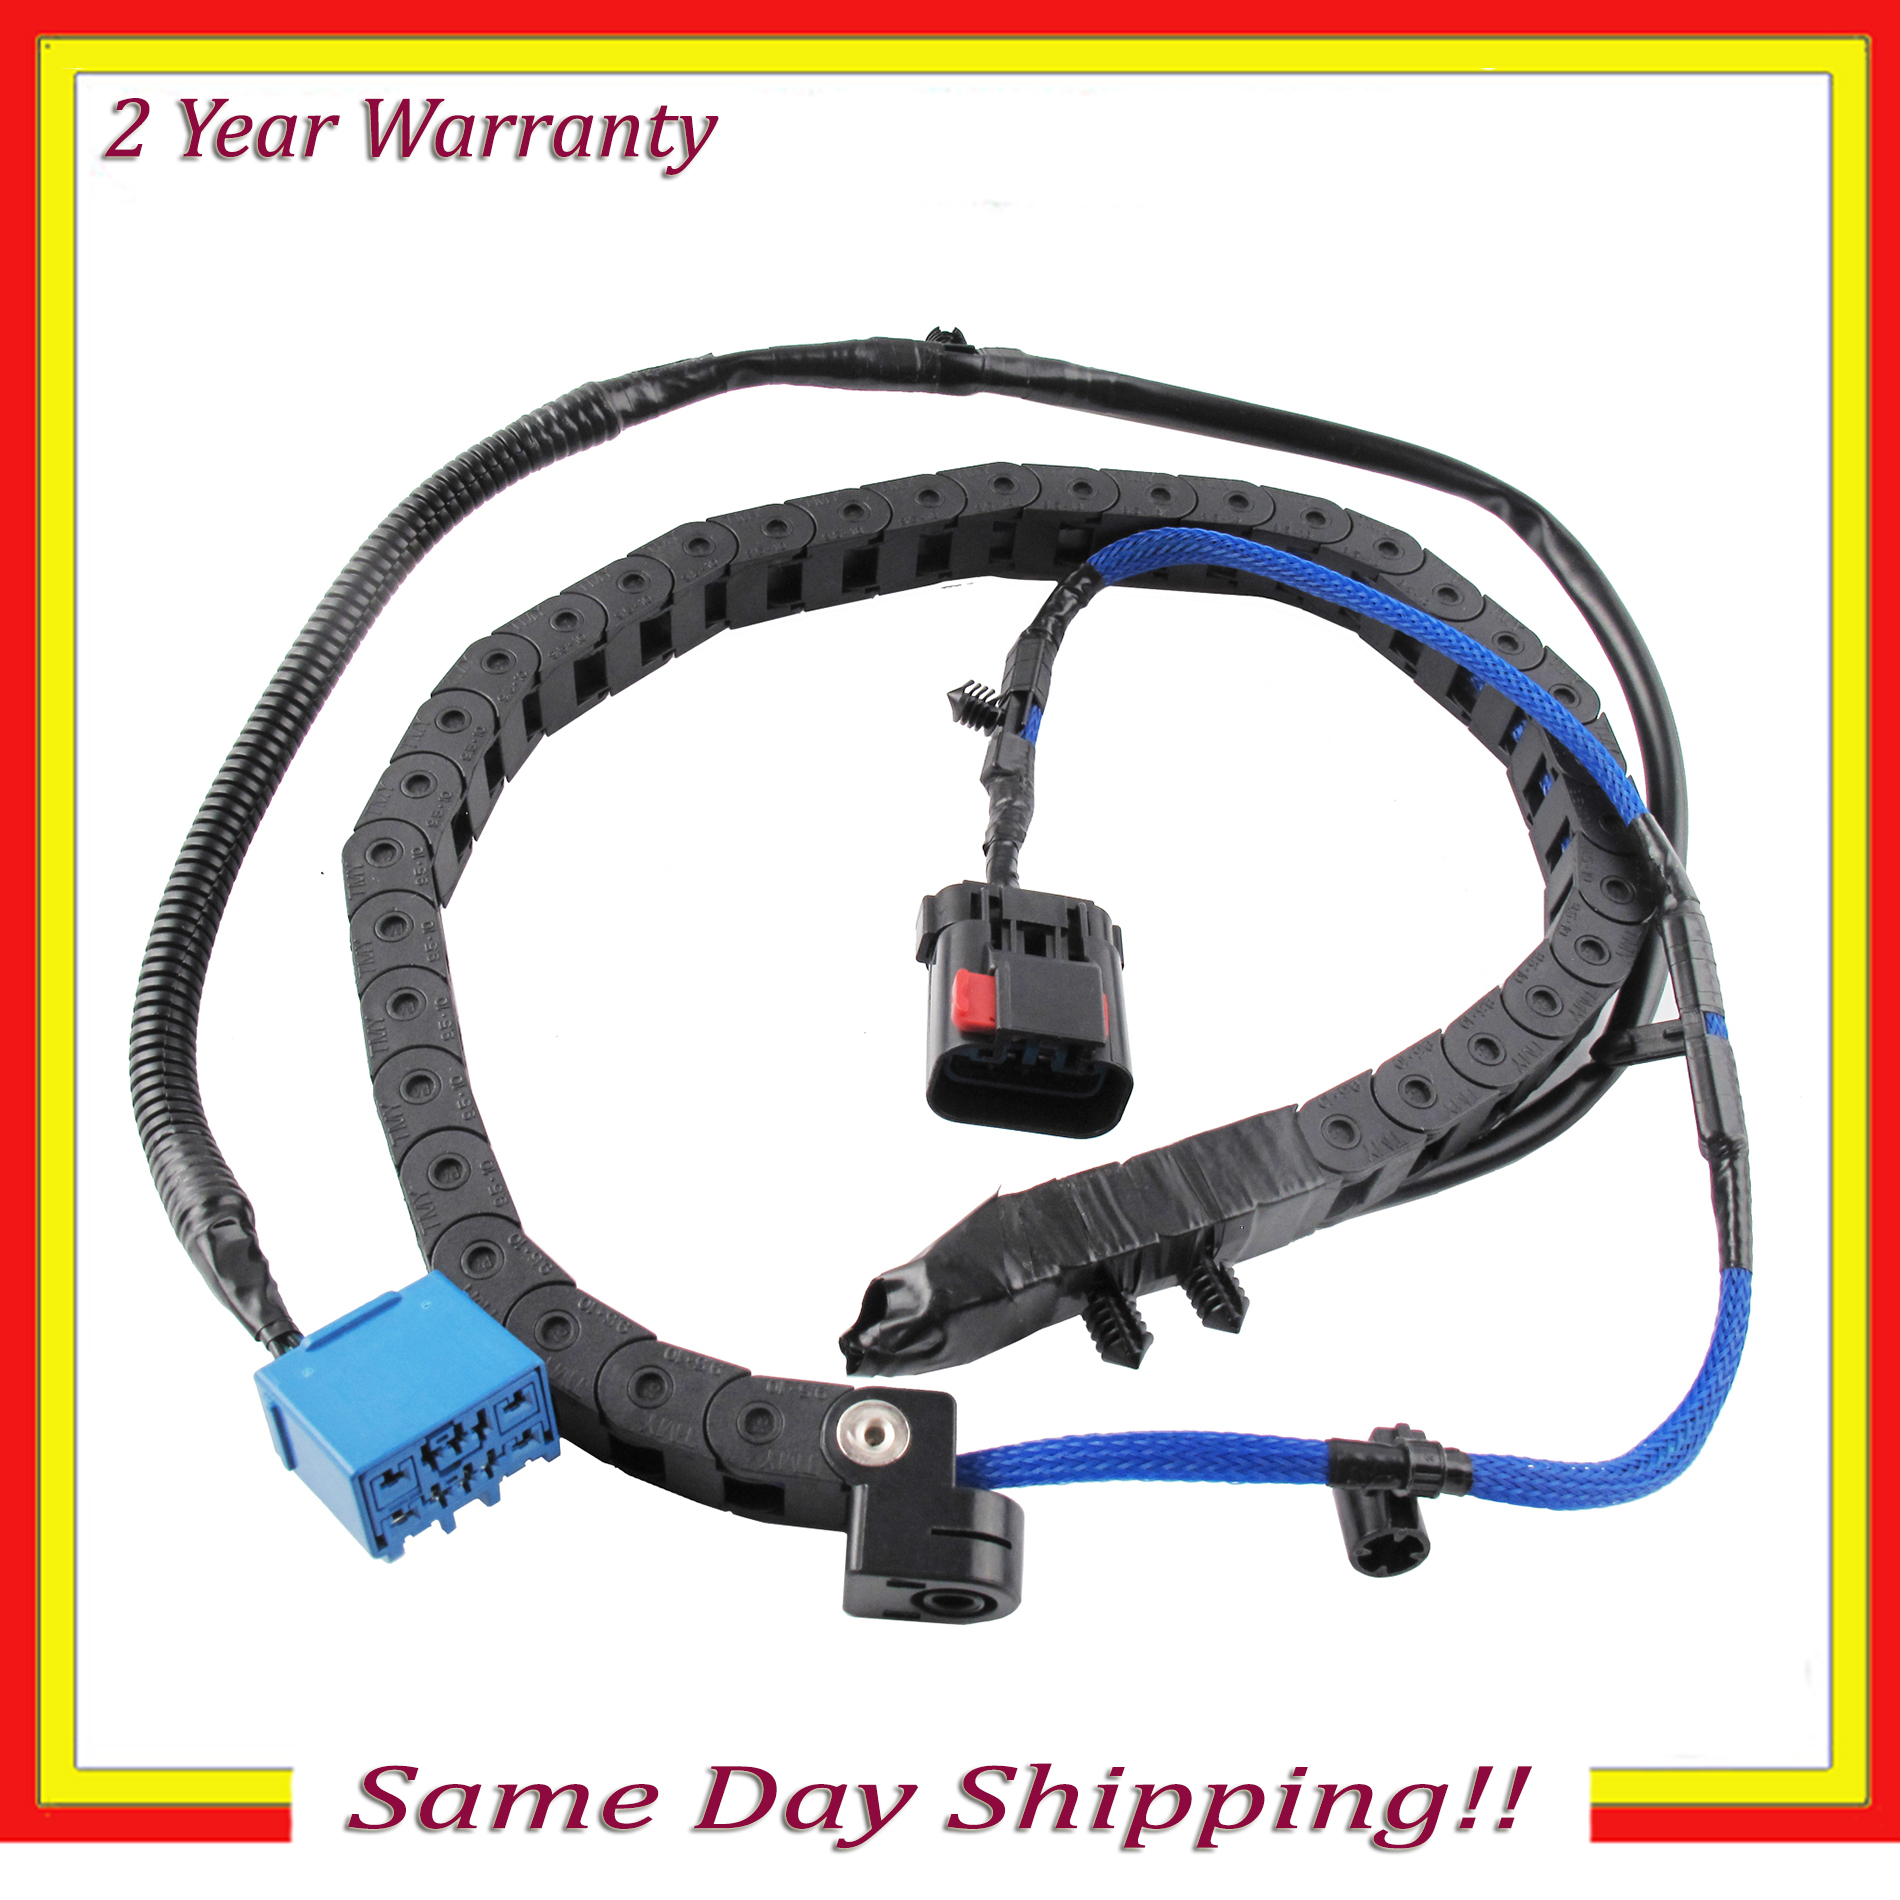 Details about Power Sliding Door Wiring Harness For New Chrysler Town on dodge ram wiring, dodge caliber wiring, dodge viper wiring, dodge magnum wiring, dodge neon srt-4 wiring, dodge intrepid wiring, dodge durango wiring, dodge challenger wiring,